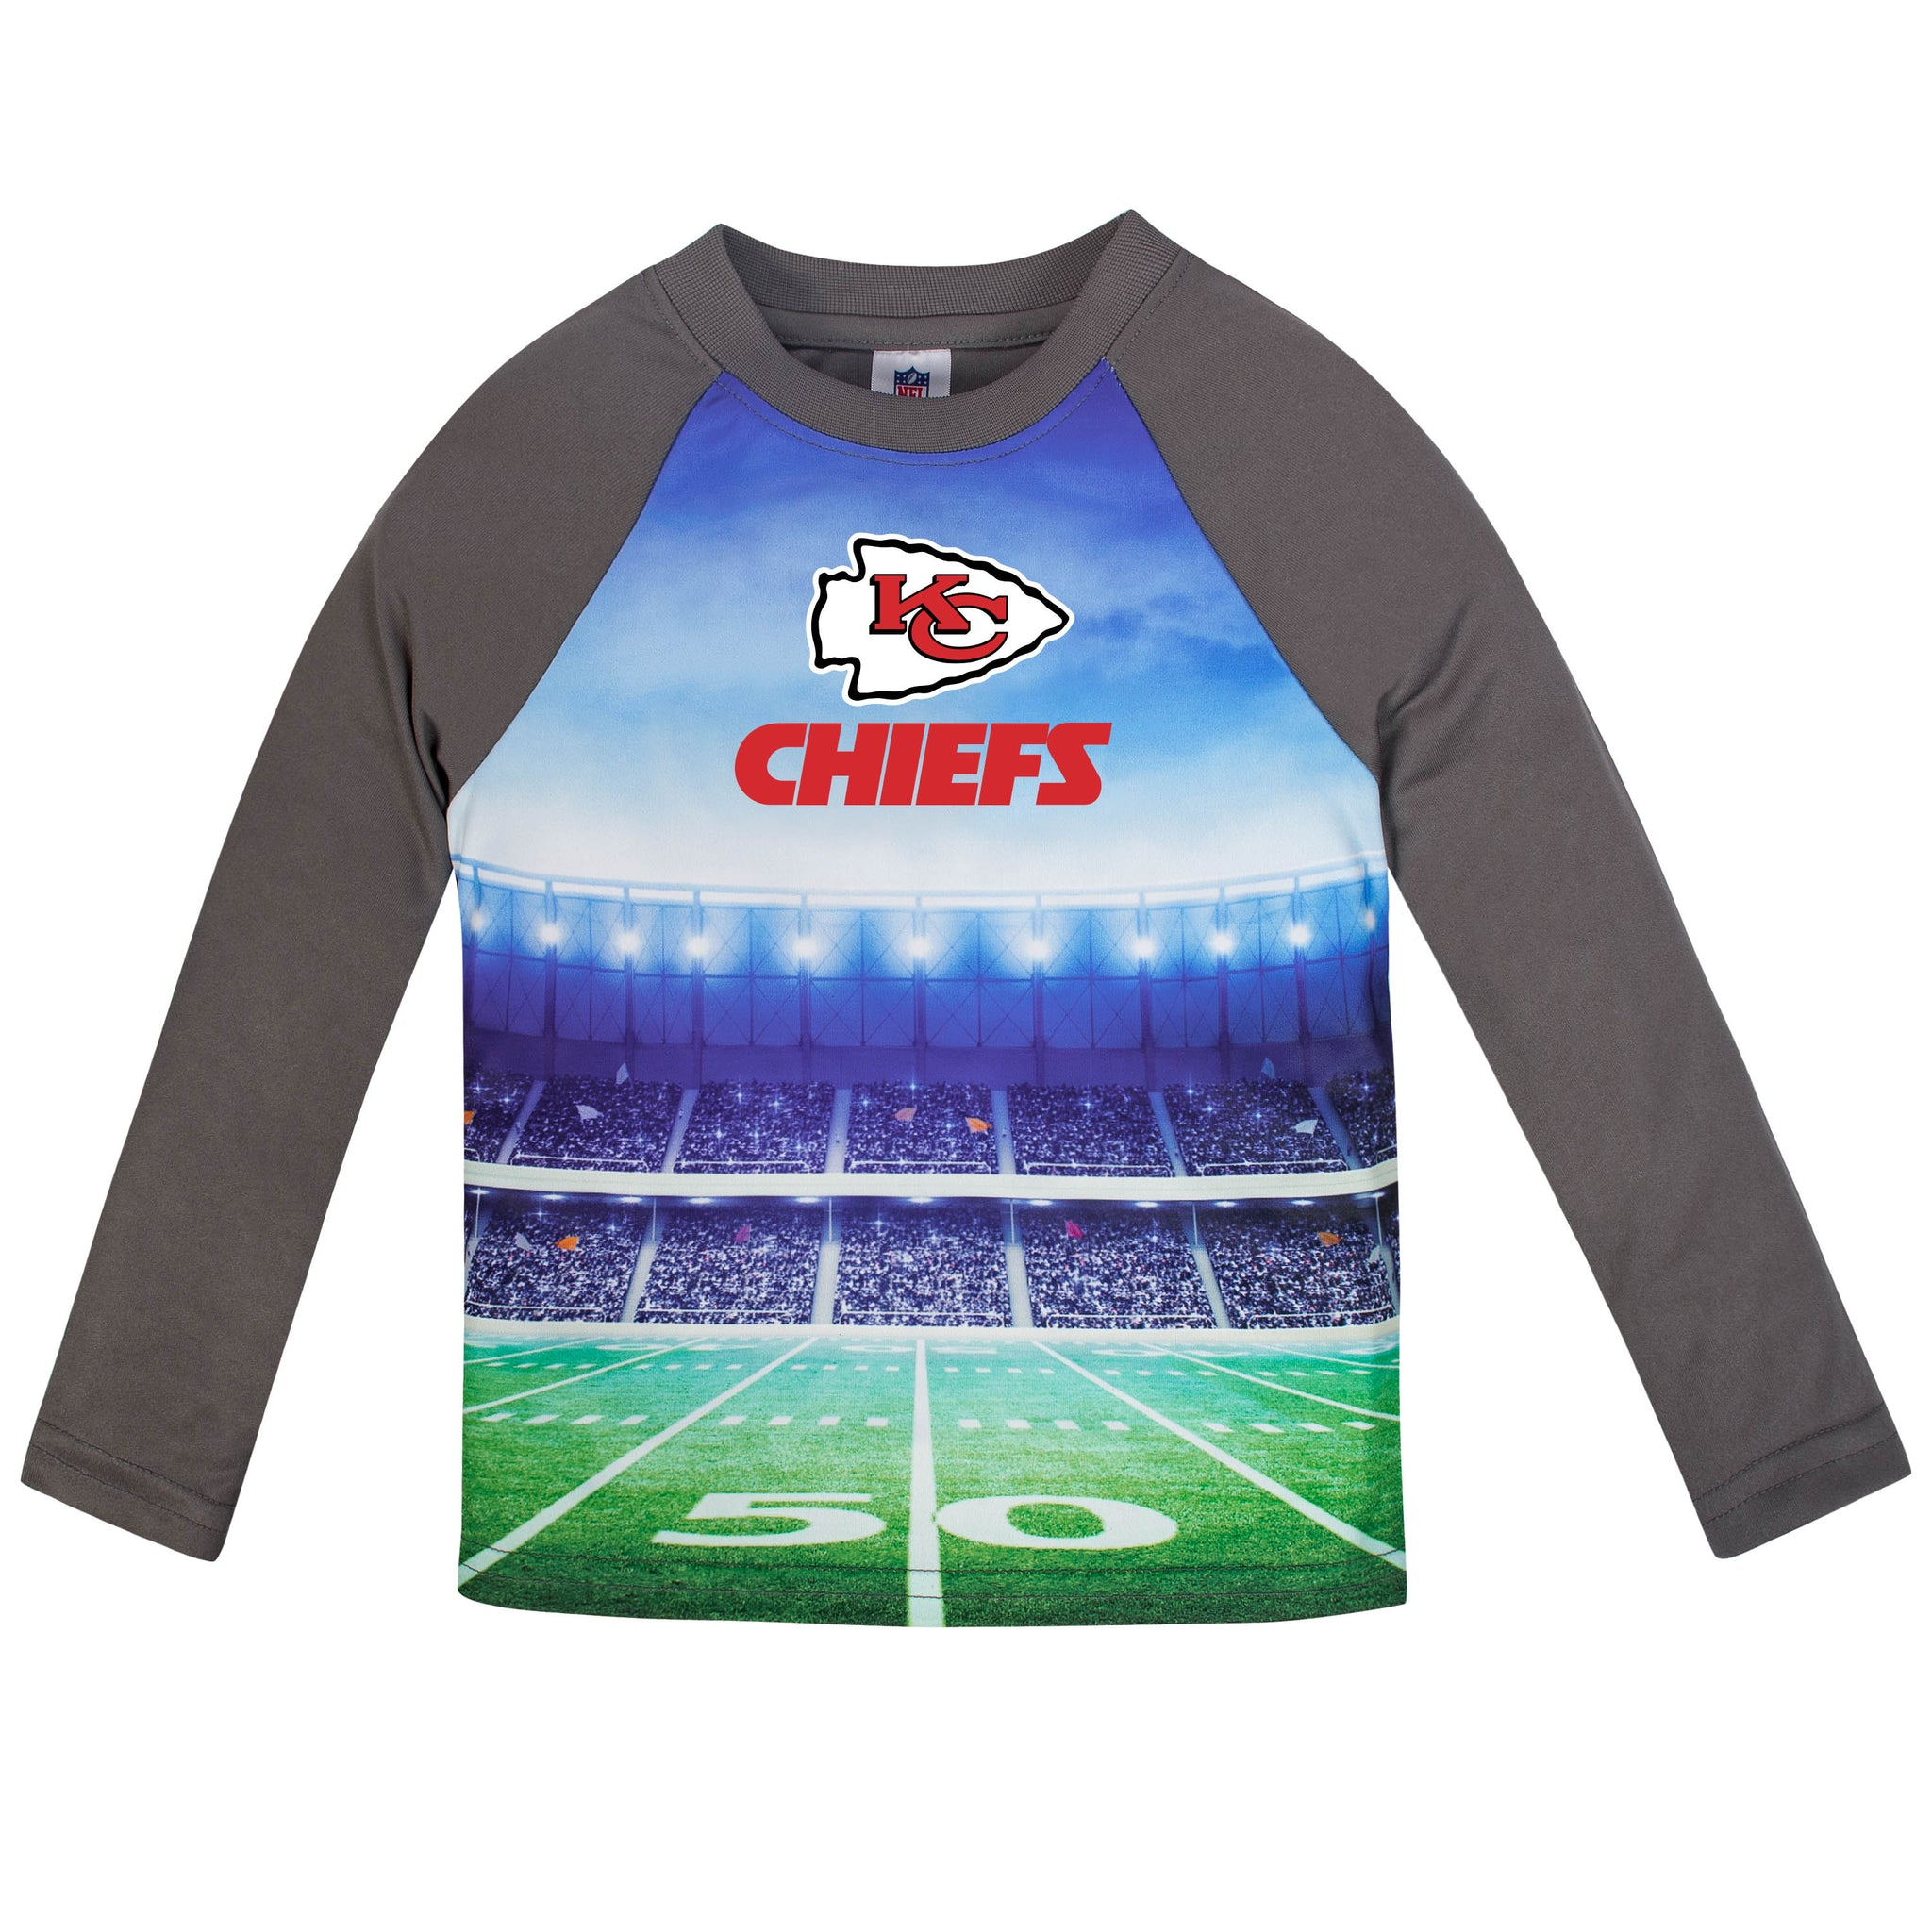 Kansas City Chiefs Boys Long Sleeve Tee Shirt-Gerber Childrenswear